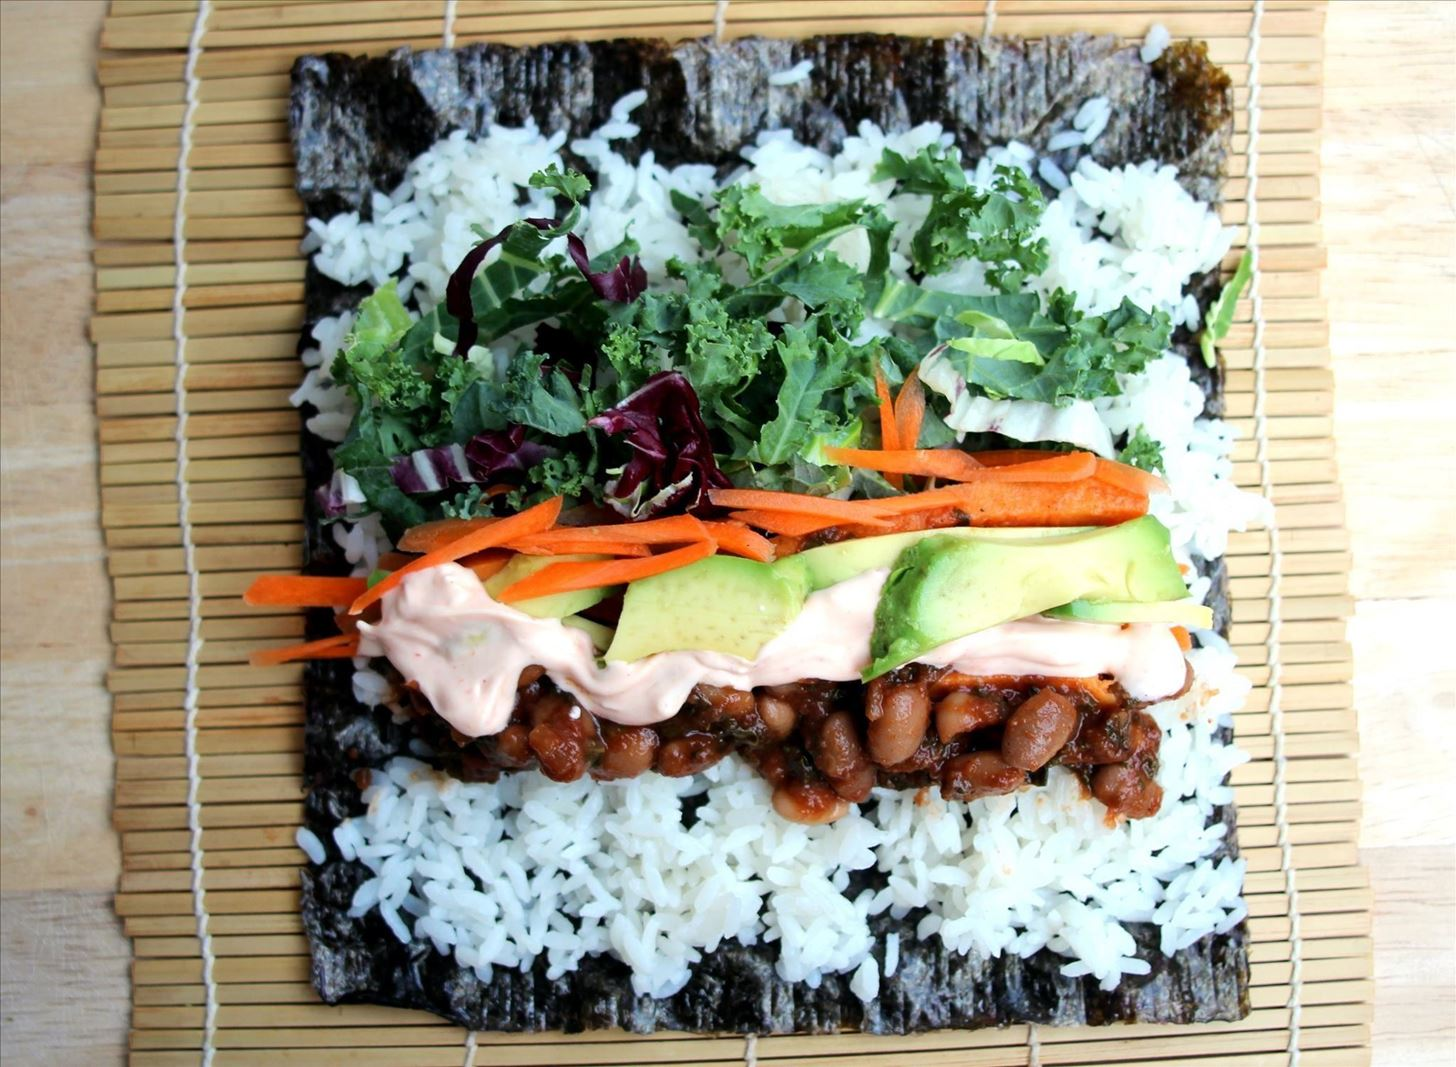 Sushi + Burrito = The Ultimate Handheld Meal